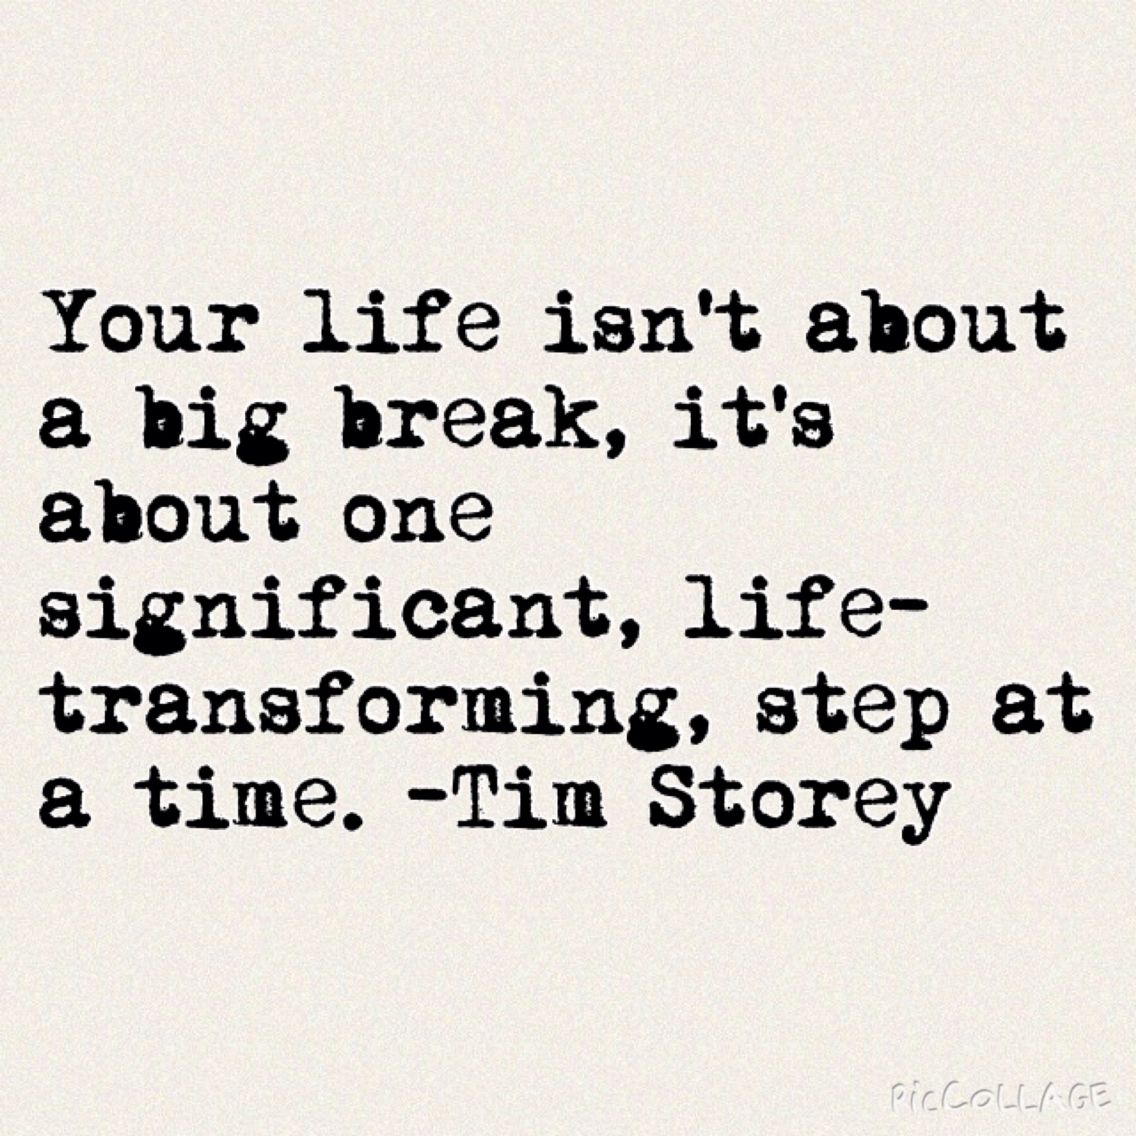 Interesting Quotes About Life Your Life Isn't About A Big Break It's About One Significant